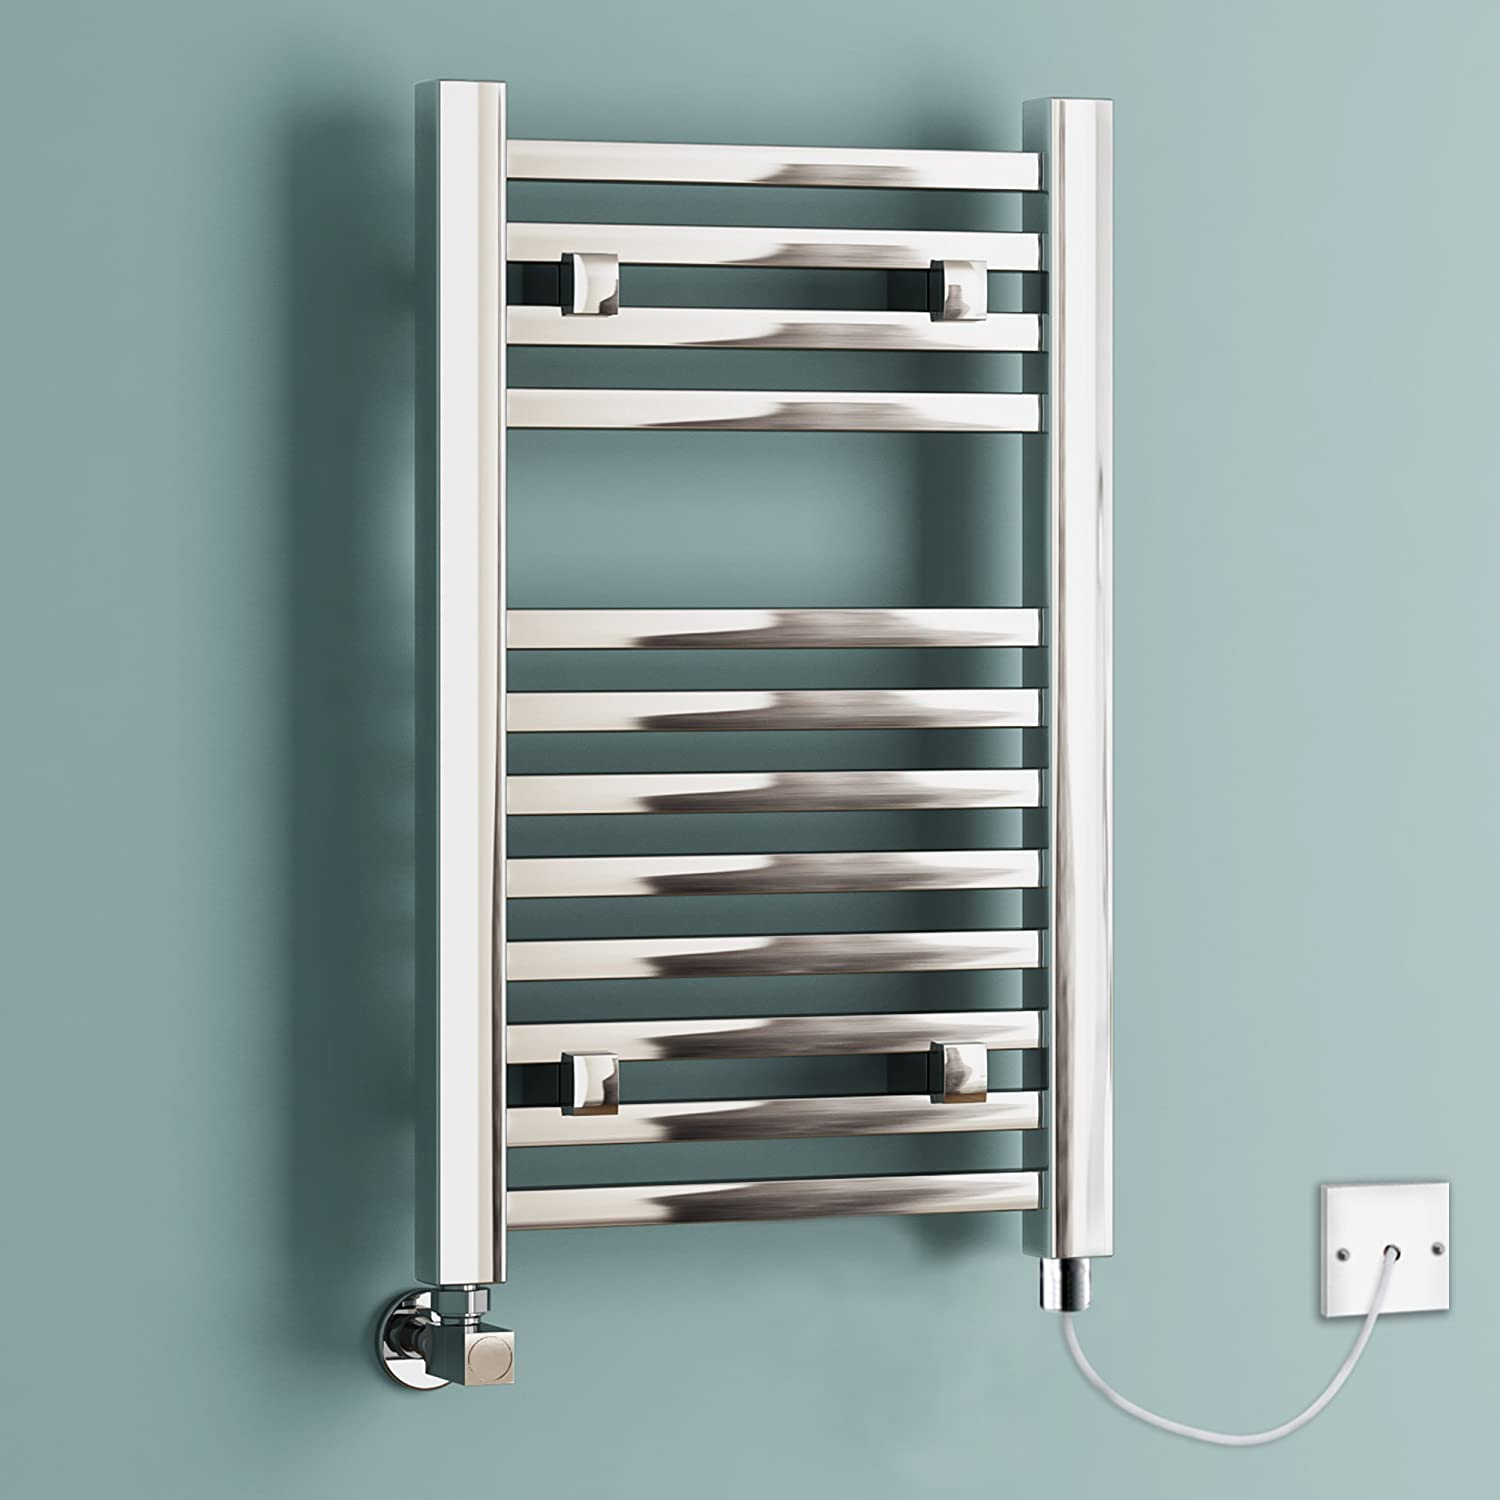 650 x 400 mm Electric Chrome Designer Square Towel Rail Radiator Heated Bathroom iBathUK